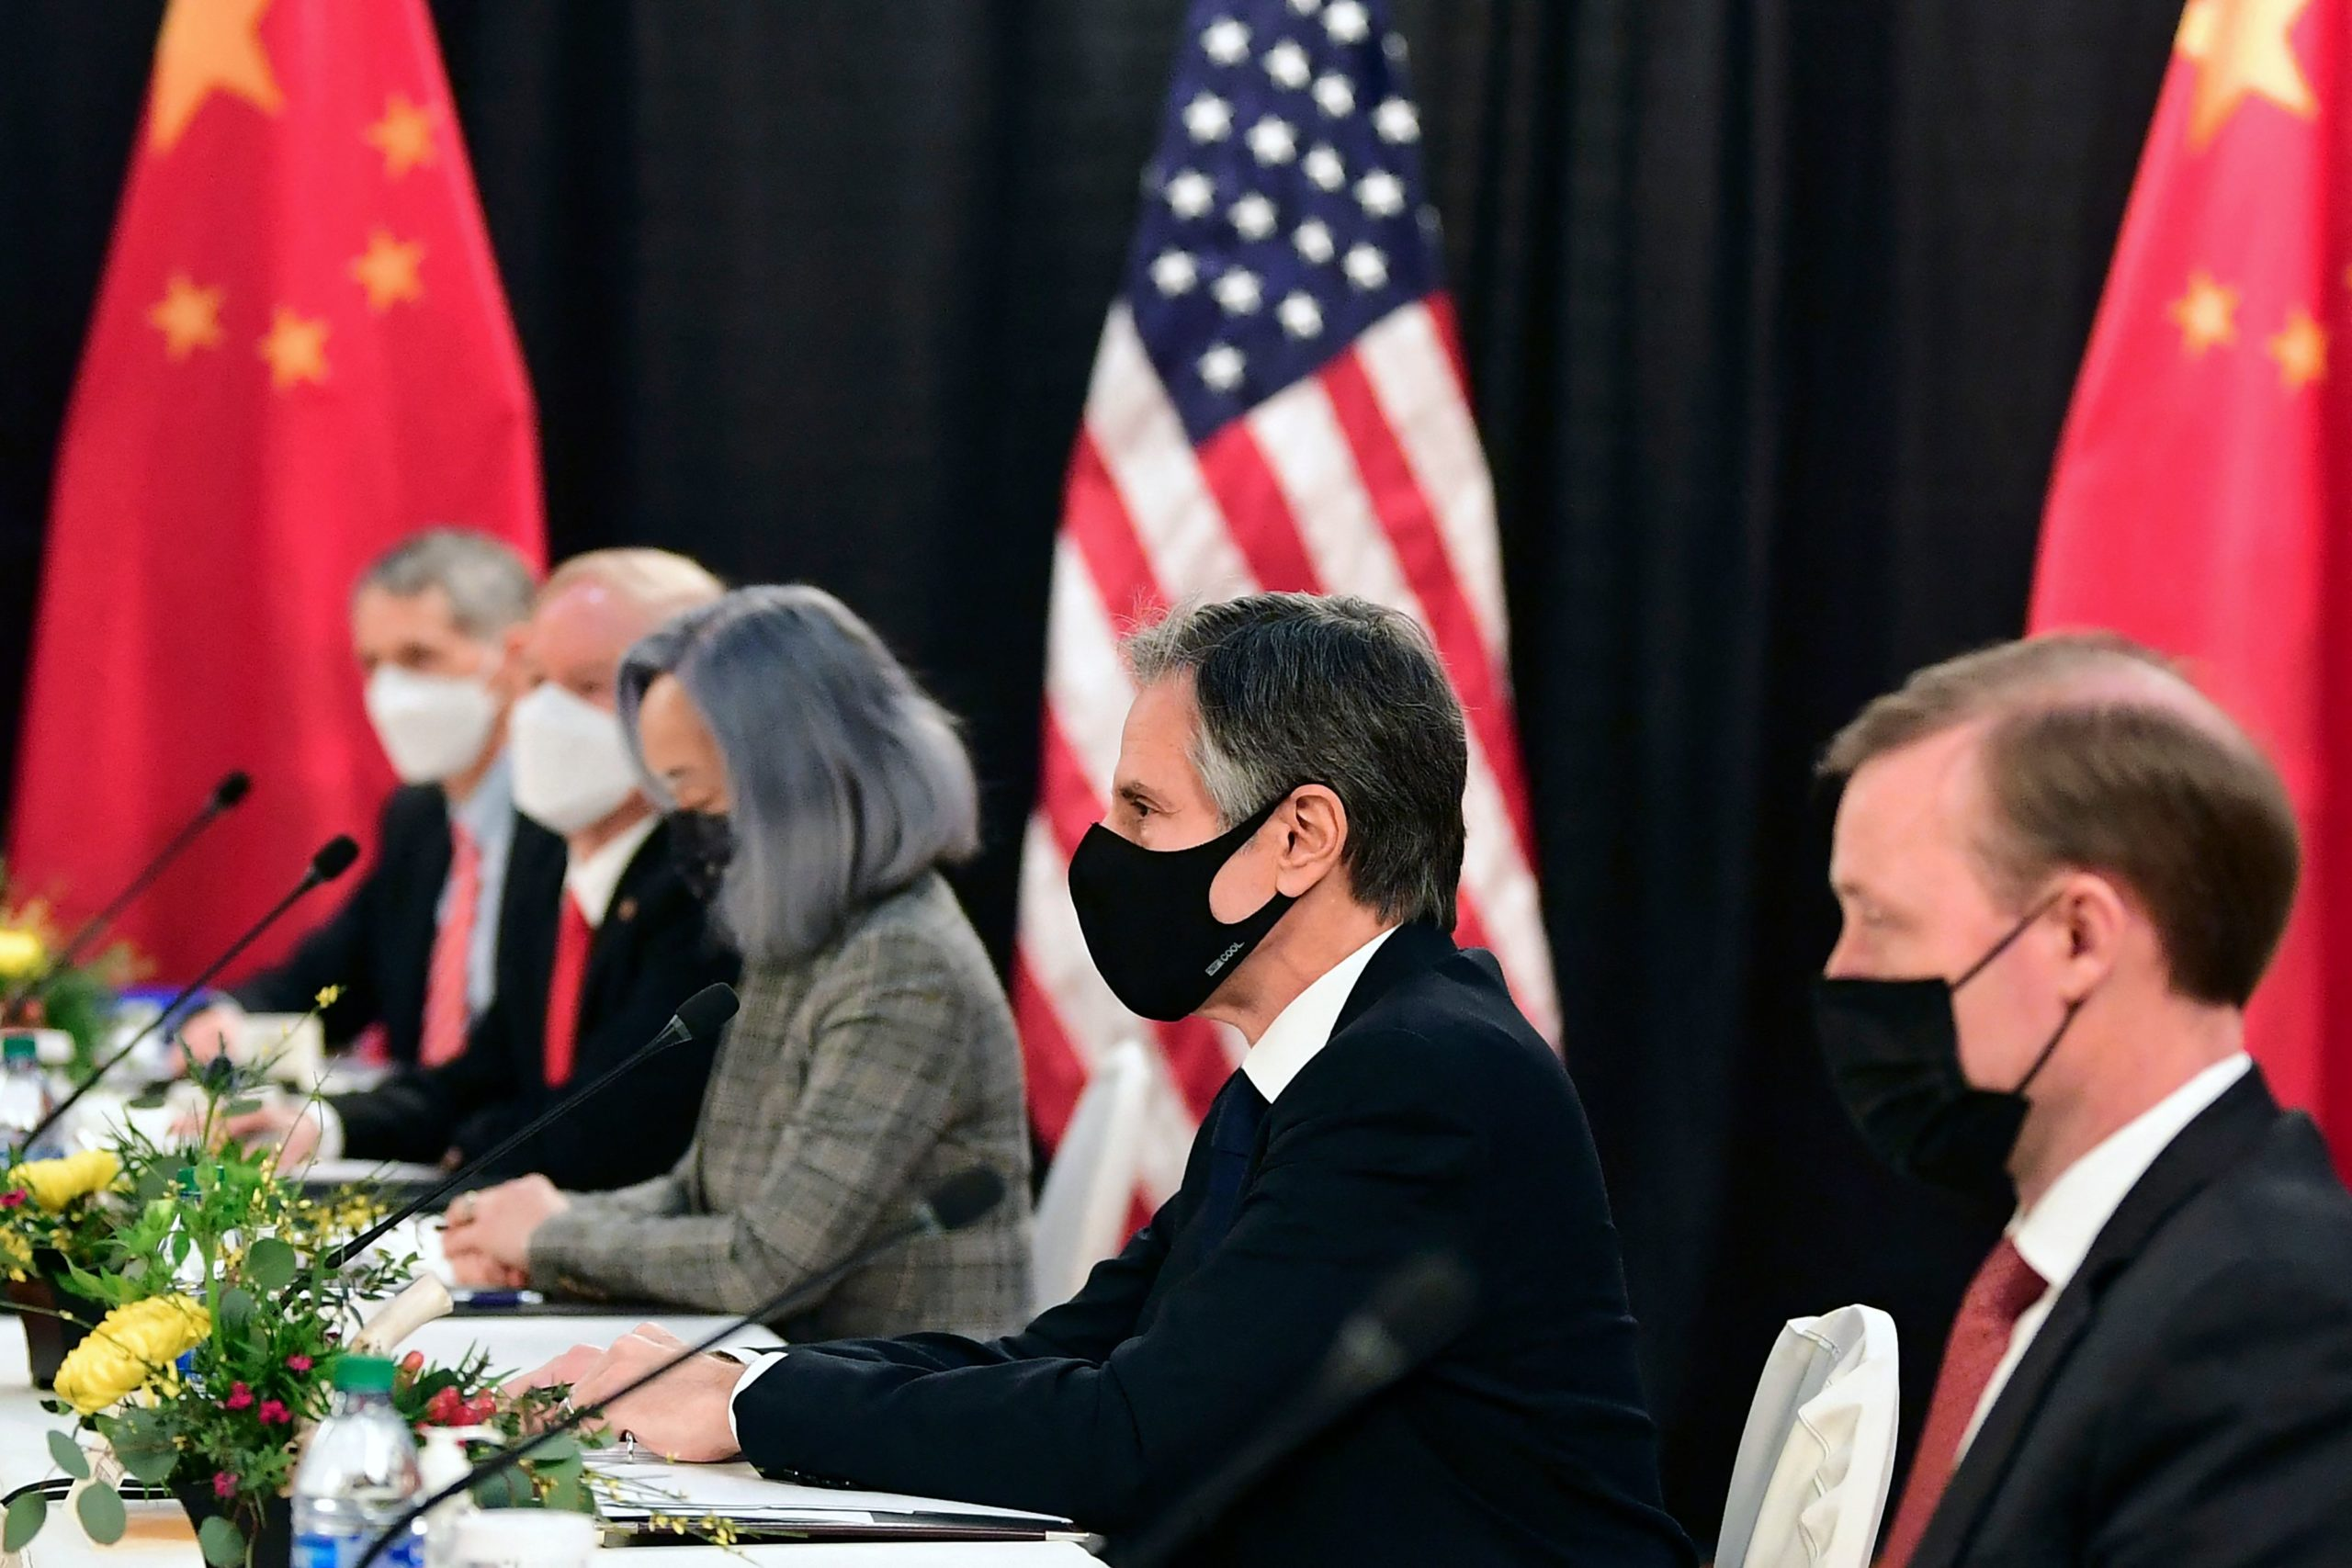 """The US delegation led by Secretary of State Antony Blinken (C), flanked by US National Security Advisor Jake Sullivan (R), face their Chinese counterparts at the opening session of US-China talks at the Captain Cook Hotel in Anchorage, Alaska on March 18, 2021. - China's actions """"threaten the rules-based order that maintains global stability,"""" US Secretary of State Antony Blinken said Thursday at the opening of a two-day meeting with Chinese counterparts in Alaska. (Photo by Frederic J. BROWN / POOL / AFP) (Photo by FREDERIC J. BROWN/POOL/AFP via Getty Images)"""